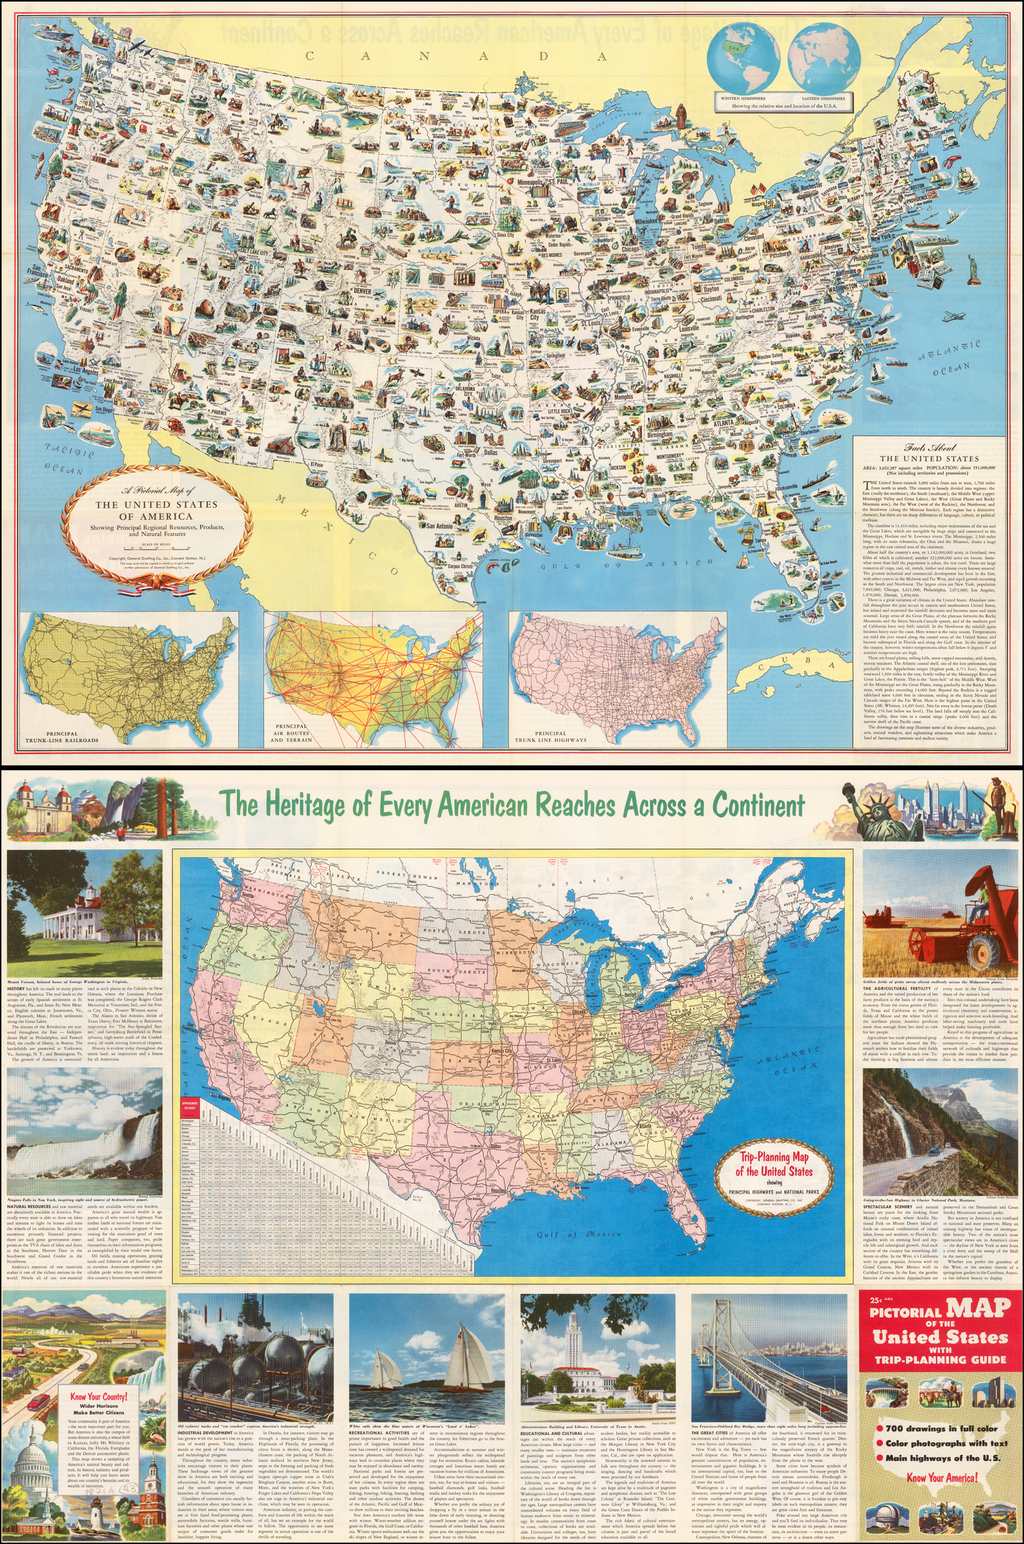 Picture of: A Pictorial Map Of The United States Of America Showing Principal Regional Resources Products And Natural Features Barry Lawrence Ruderman Antique Maps Inc